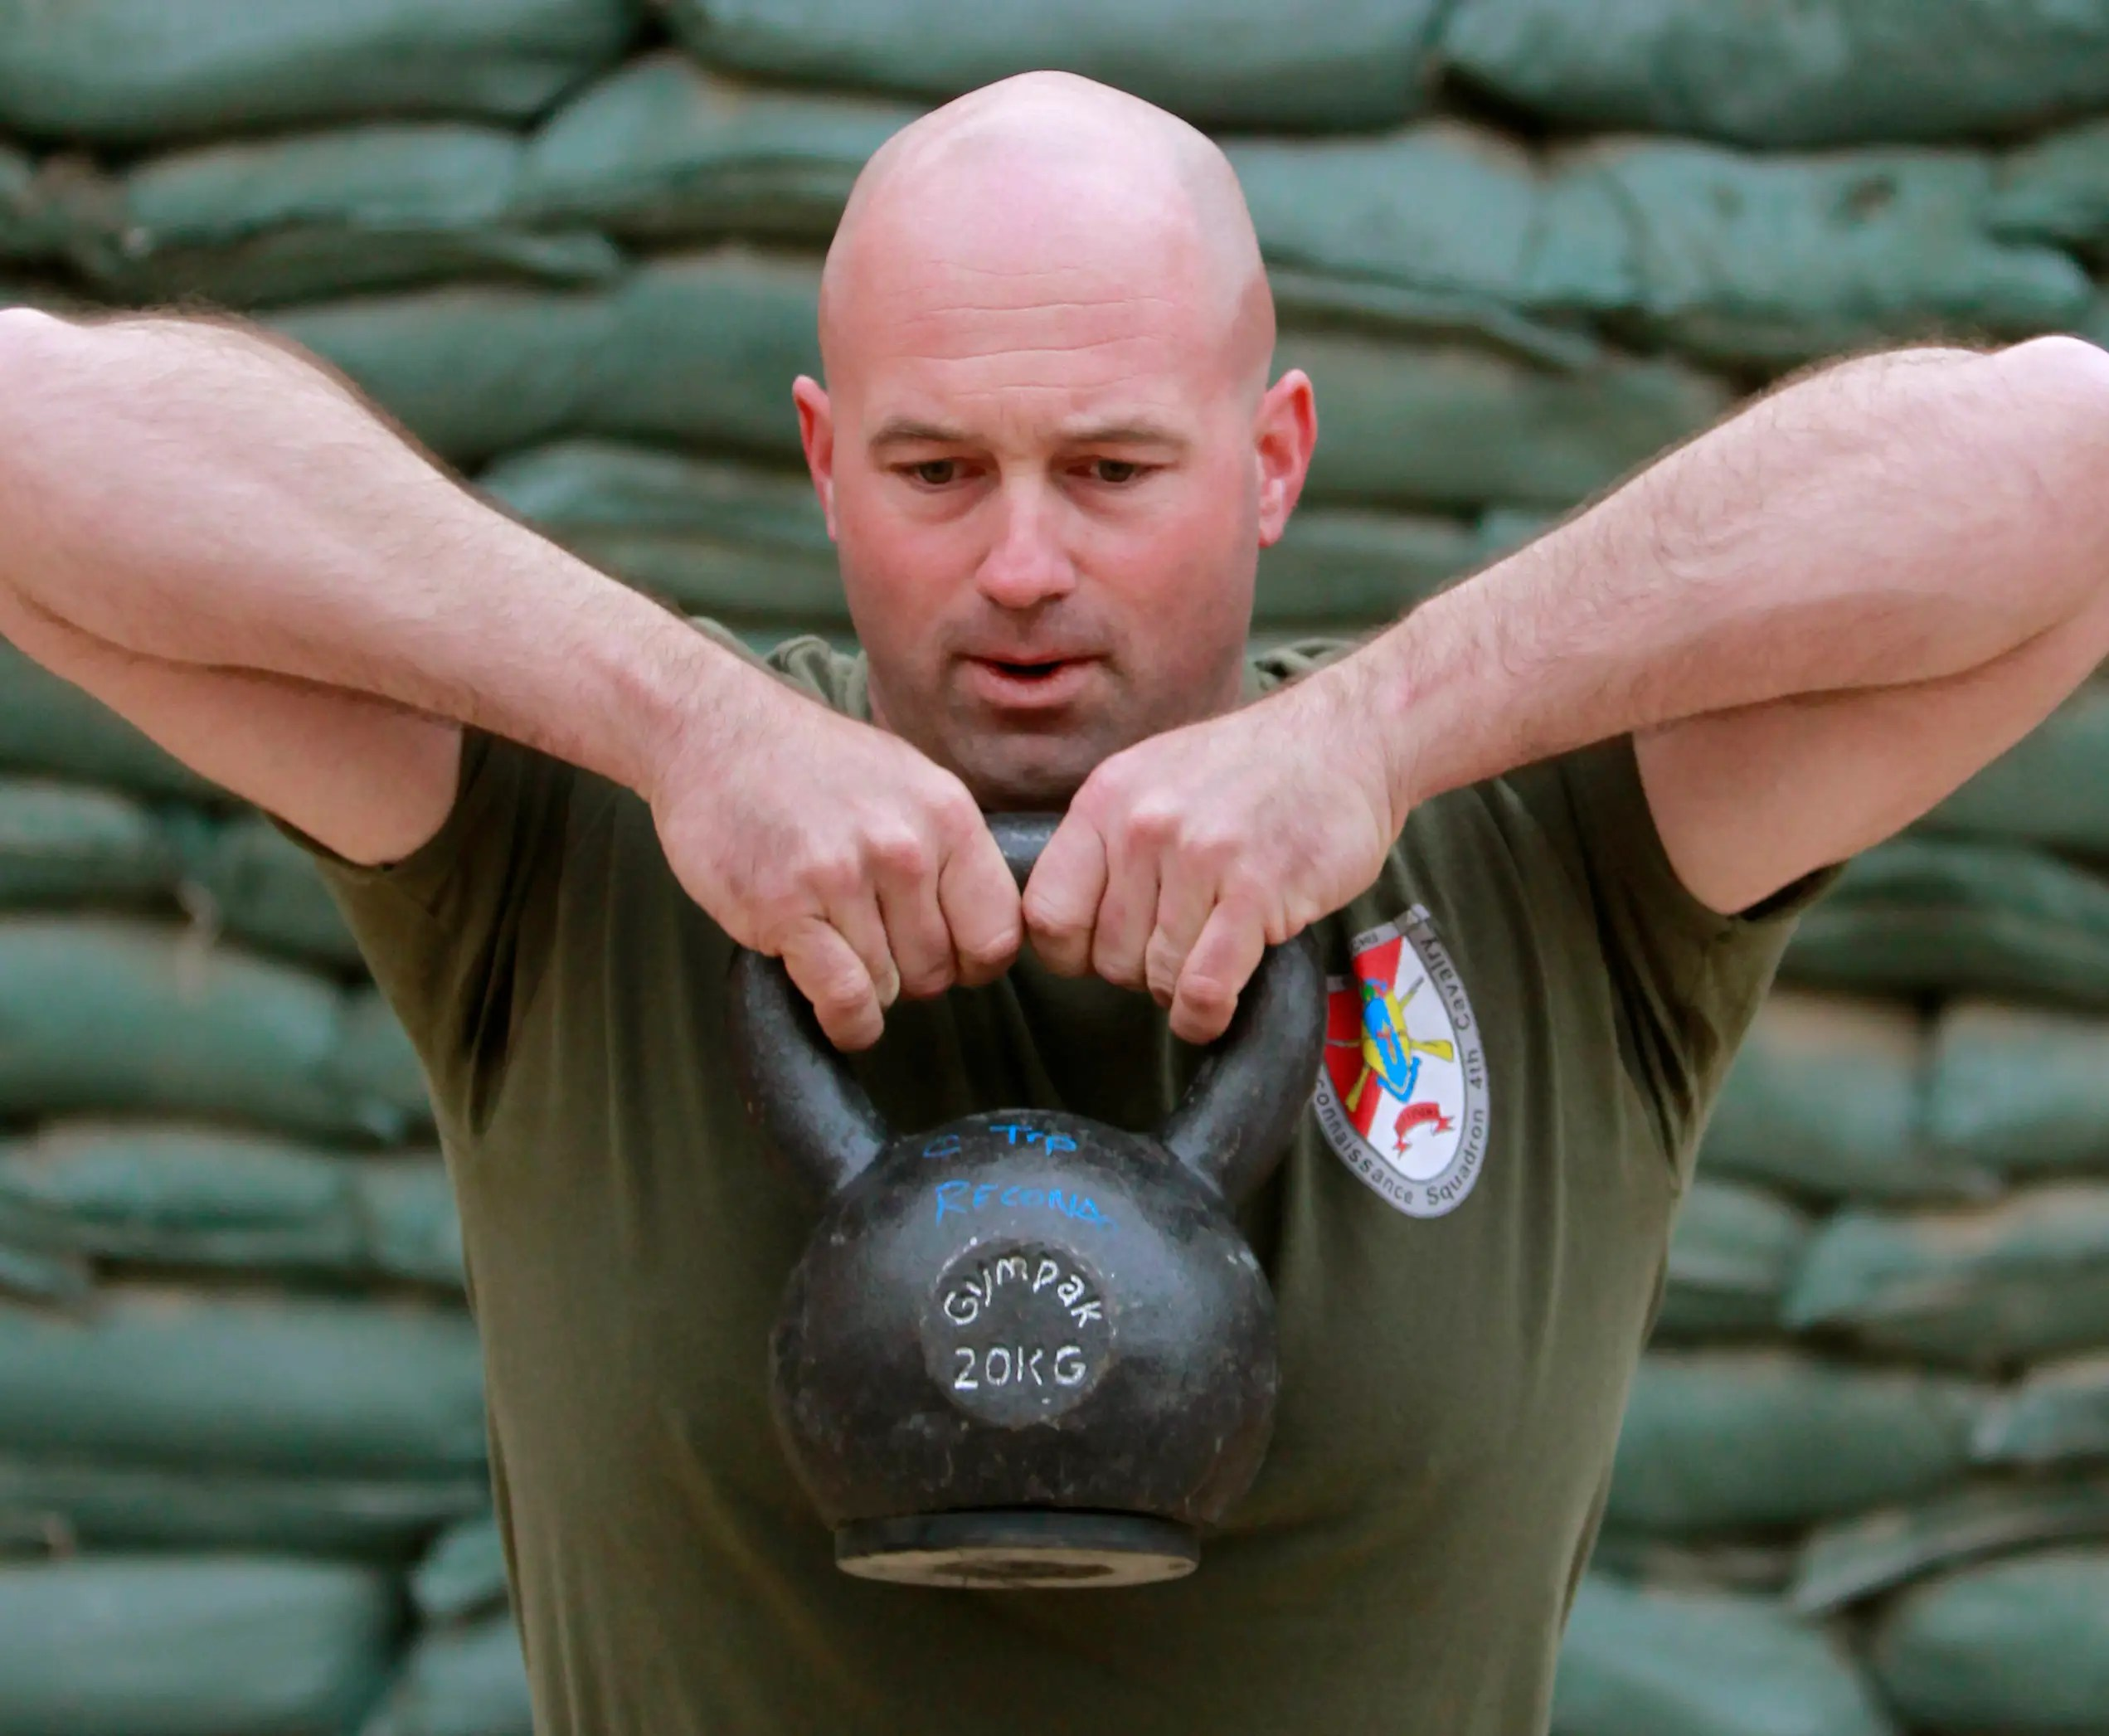 First Sergeant Mac Miller from Comanche Troop, 3rd Squadron, 4th Cavalry, lift weights at Forward Operating Base Connolly in Nangarhar province, eastern Afghanistan, March 3, 2012.